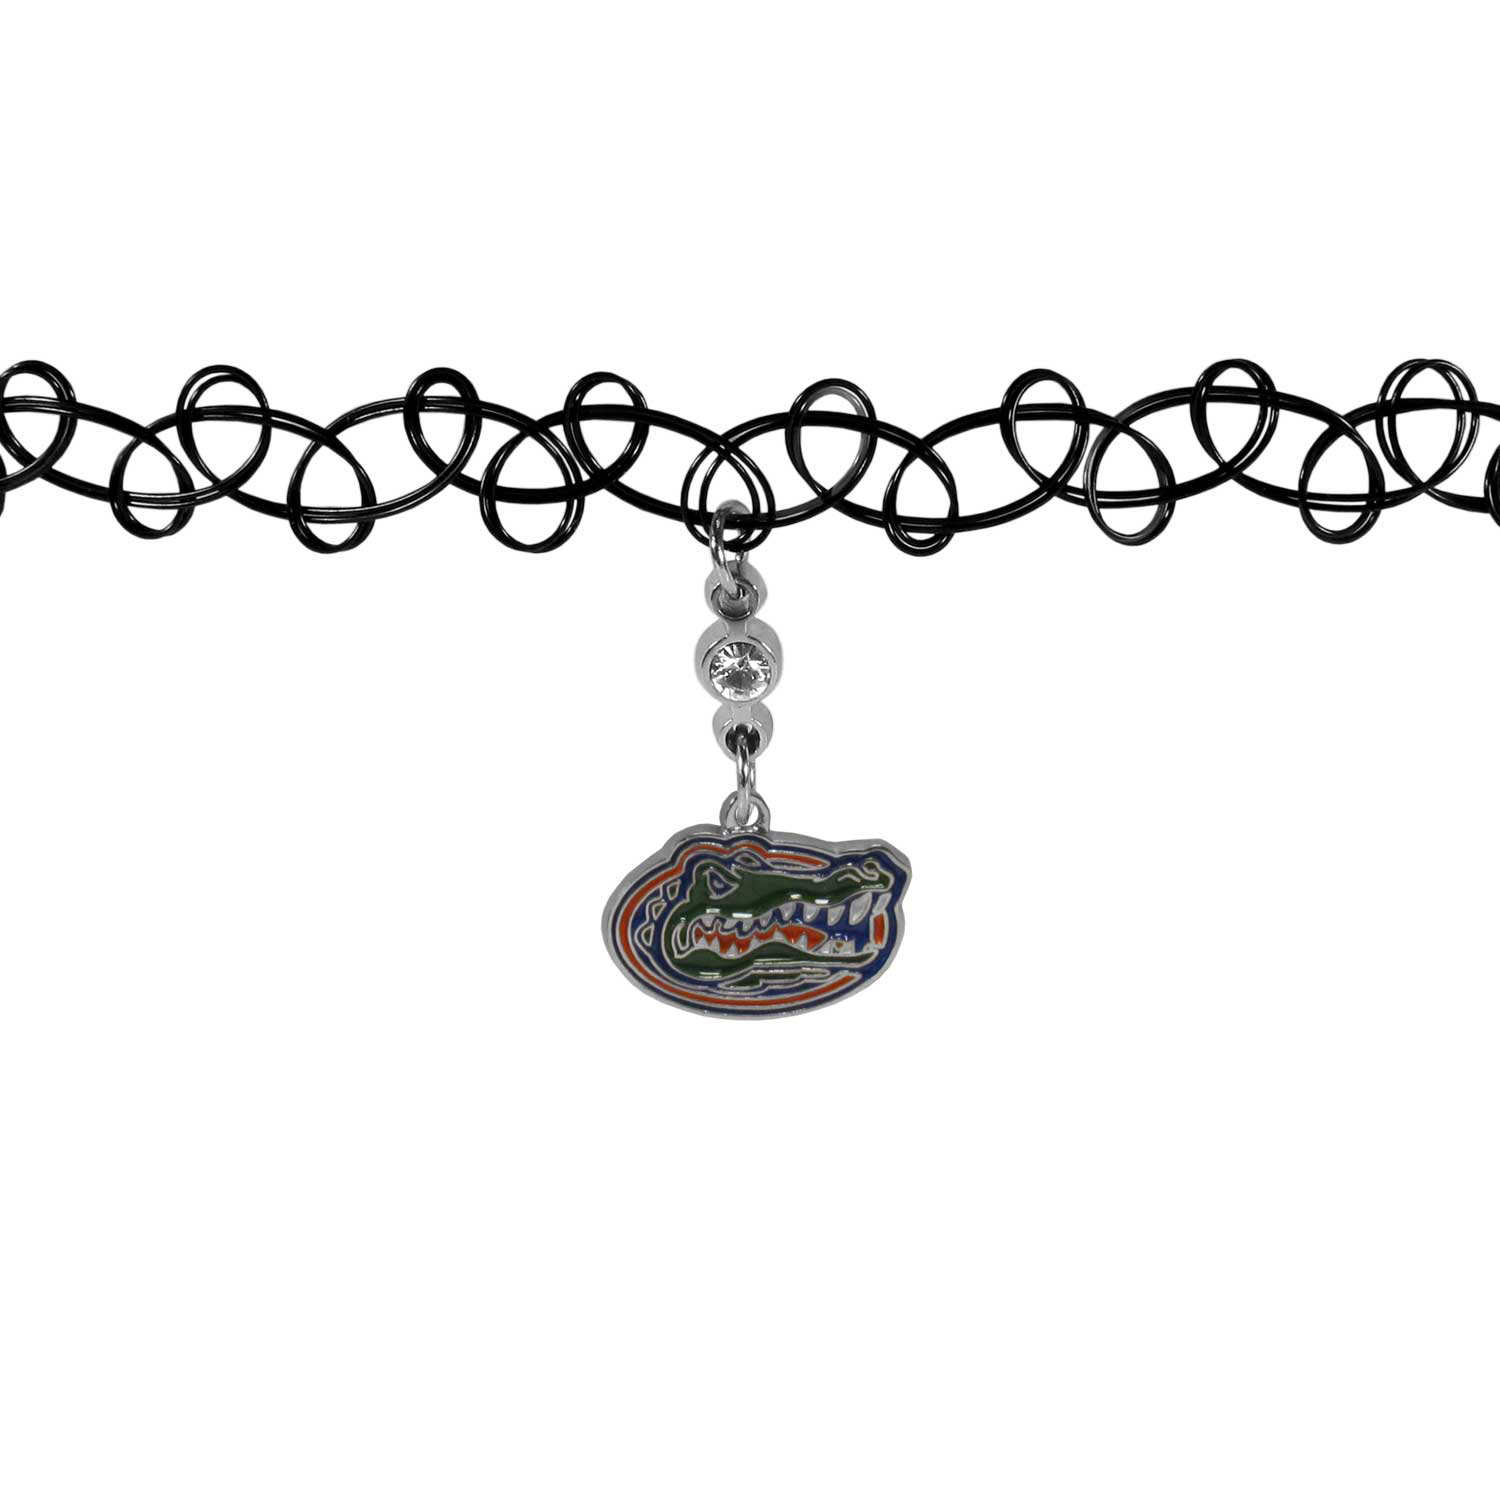 Florida Gators Knotted Choker - This retro, knotted choker is a cool and unique piece of fan jewelry. The tattoo style choker features a high polish Florida Gators charm with rhinestone accents.